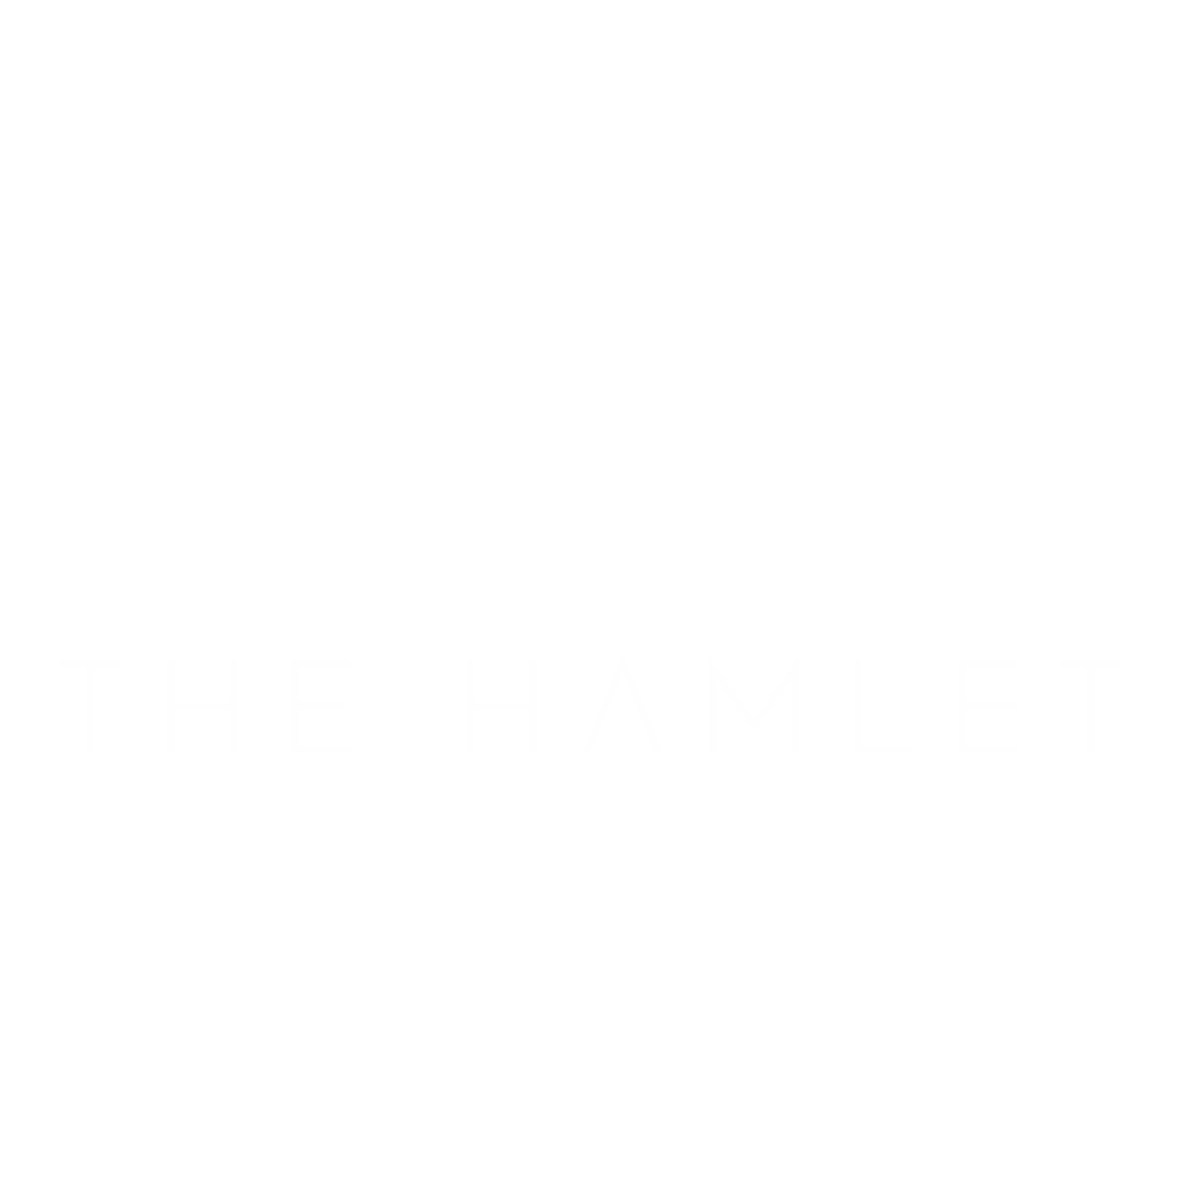 The Hamlet logo HoCoSo track record